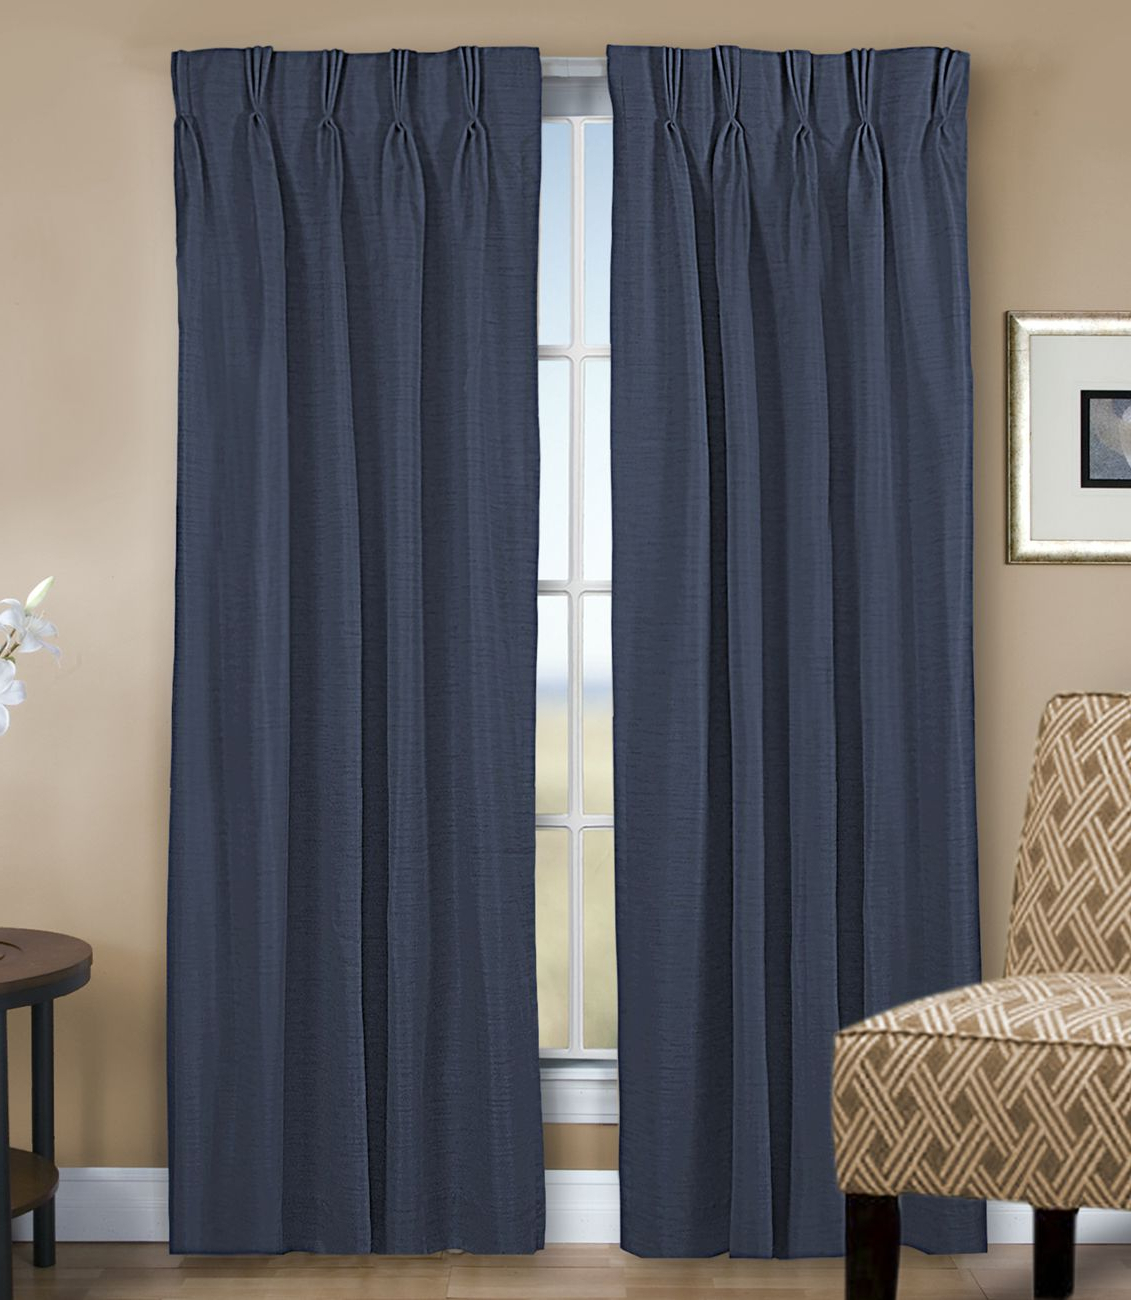 2020 Grasscloth Lined Pinch Pleated (Dual Header) Drapery Pair Regarding Double Pinch Pleat Top Curtain Panel Pairs (View 2 of 20)